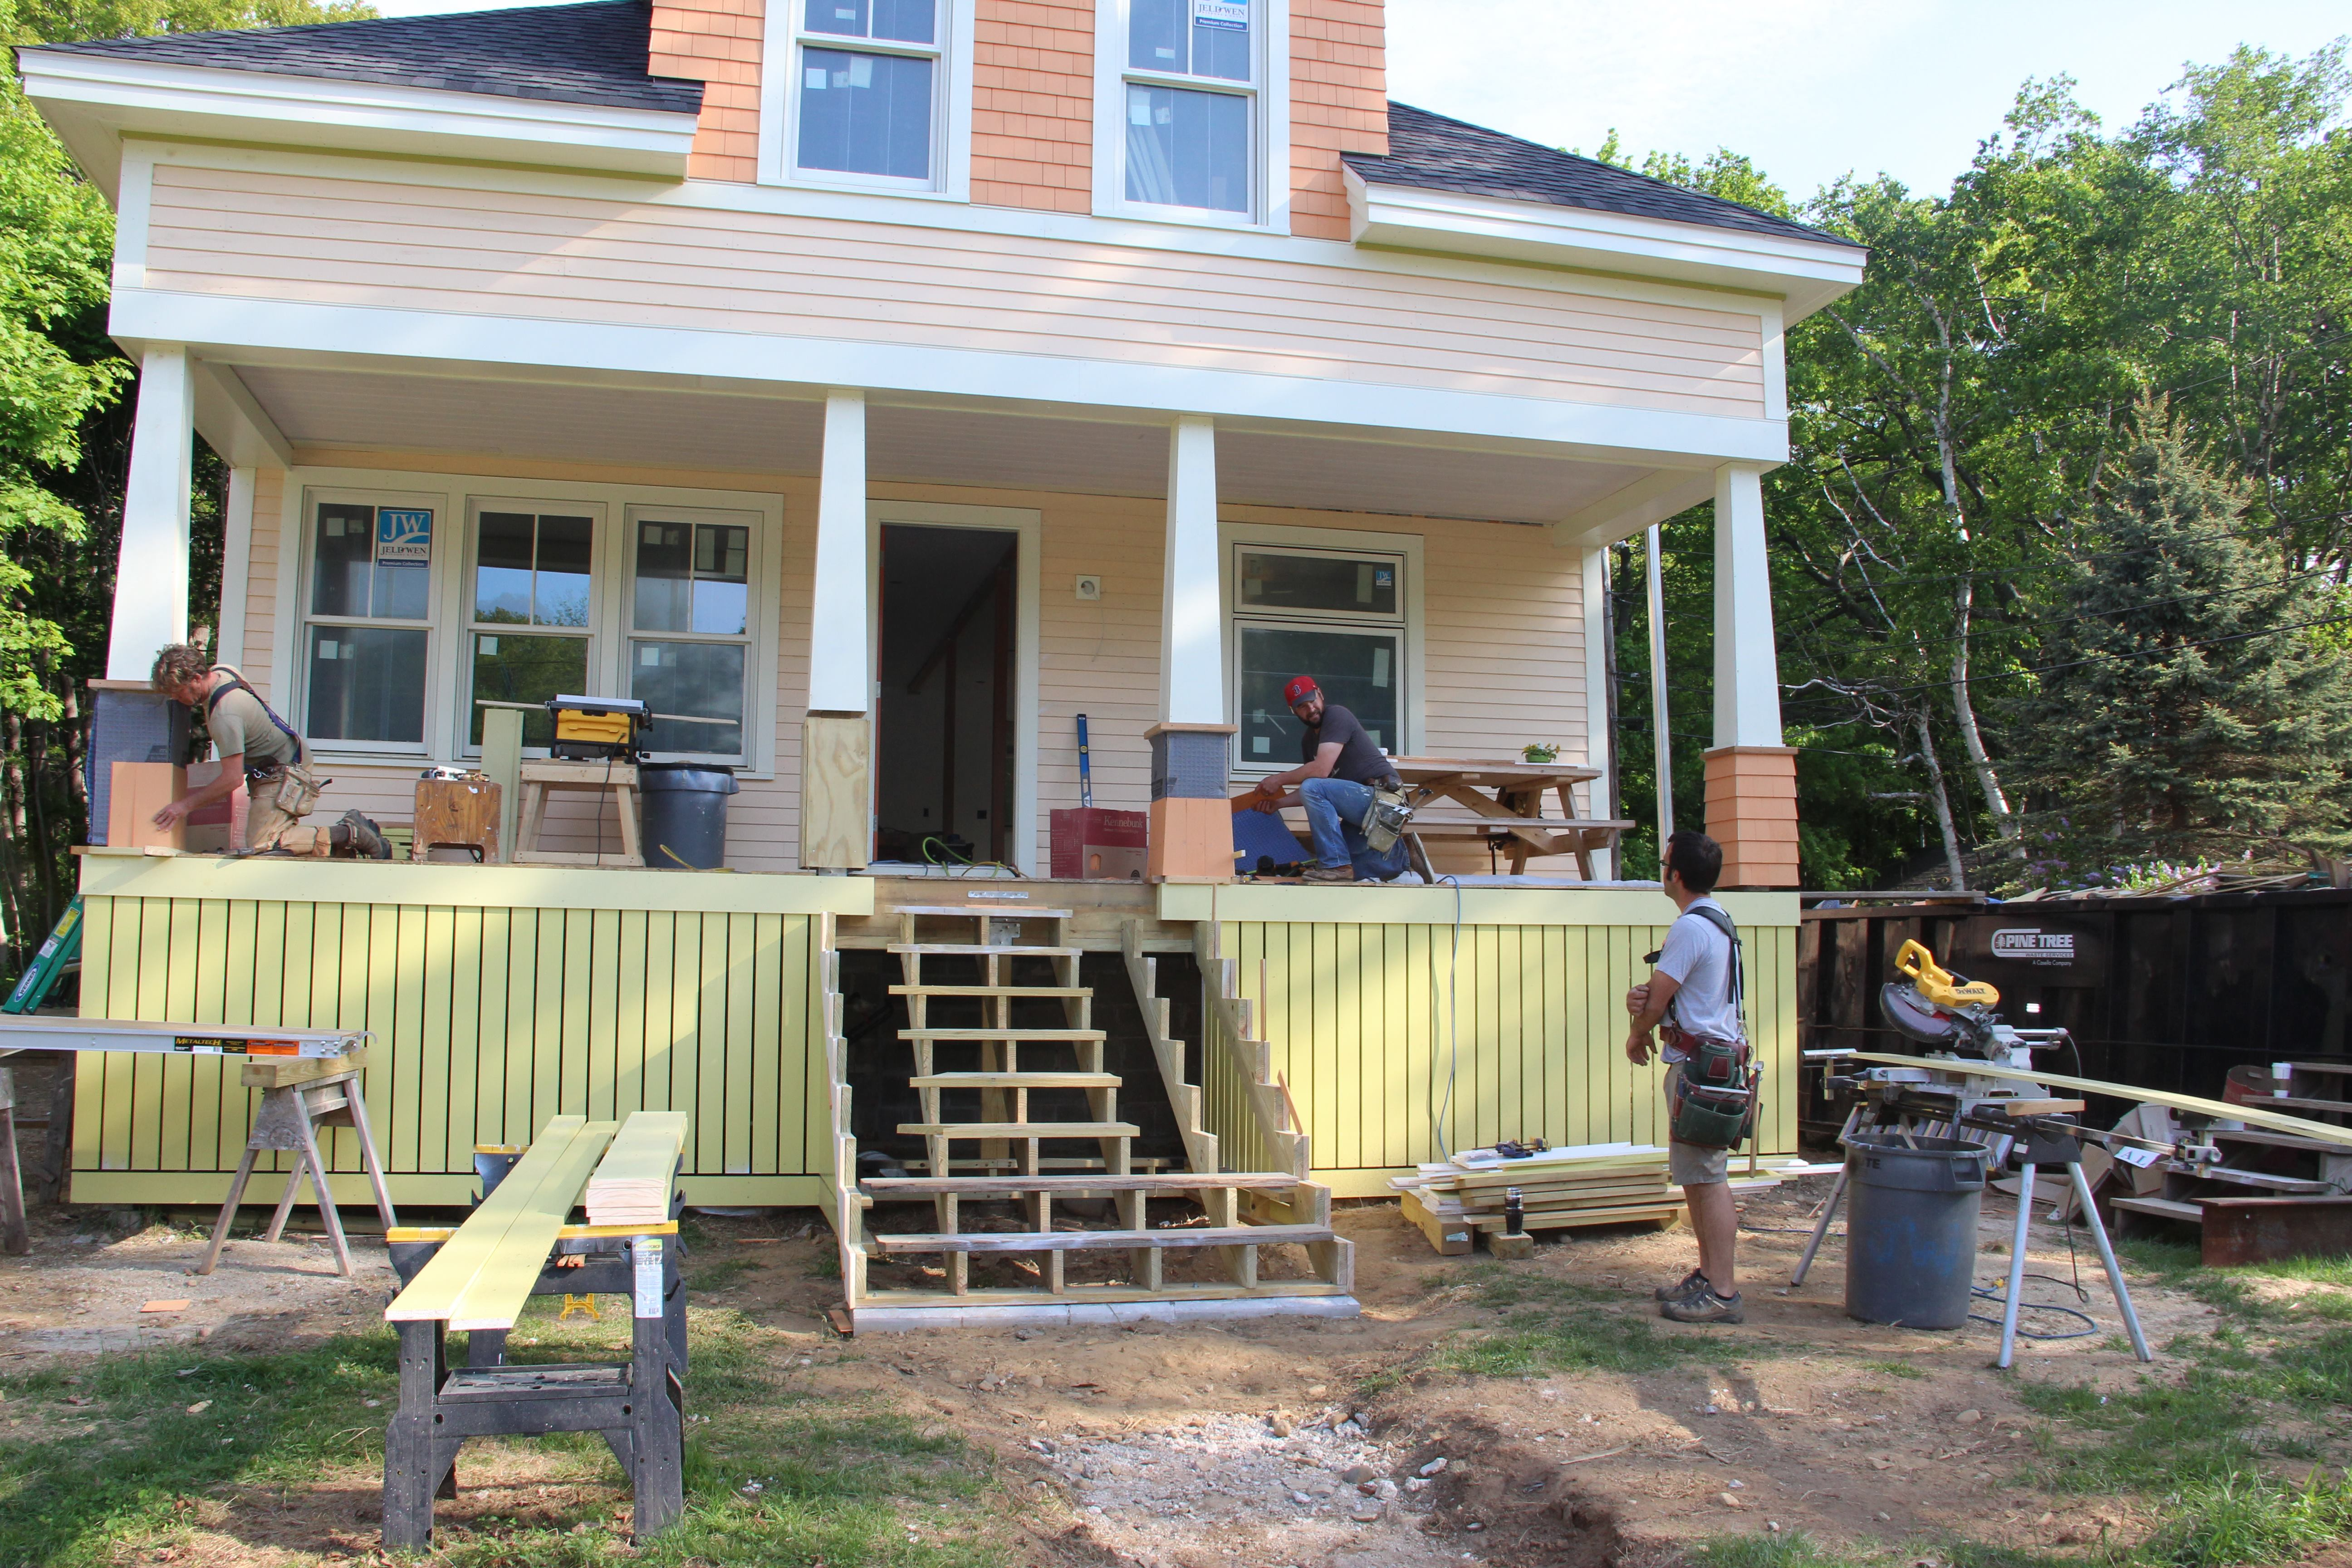 How To Get Power To Kitchen Island Craftsman Porch Columns For An Island Home | Jlc Online